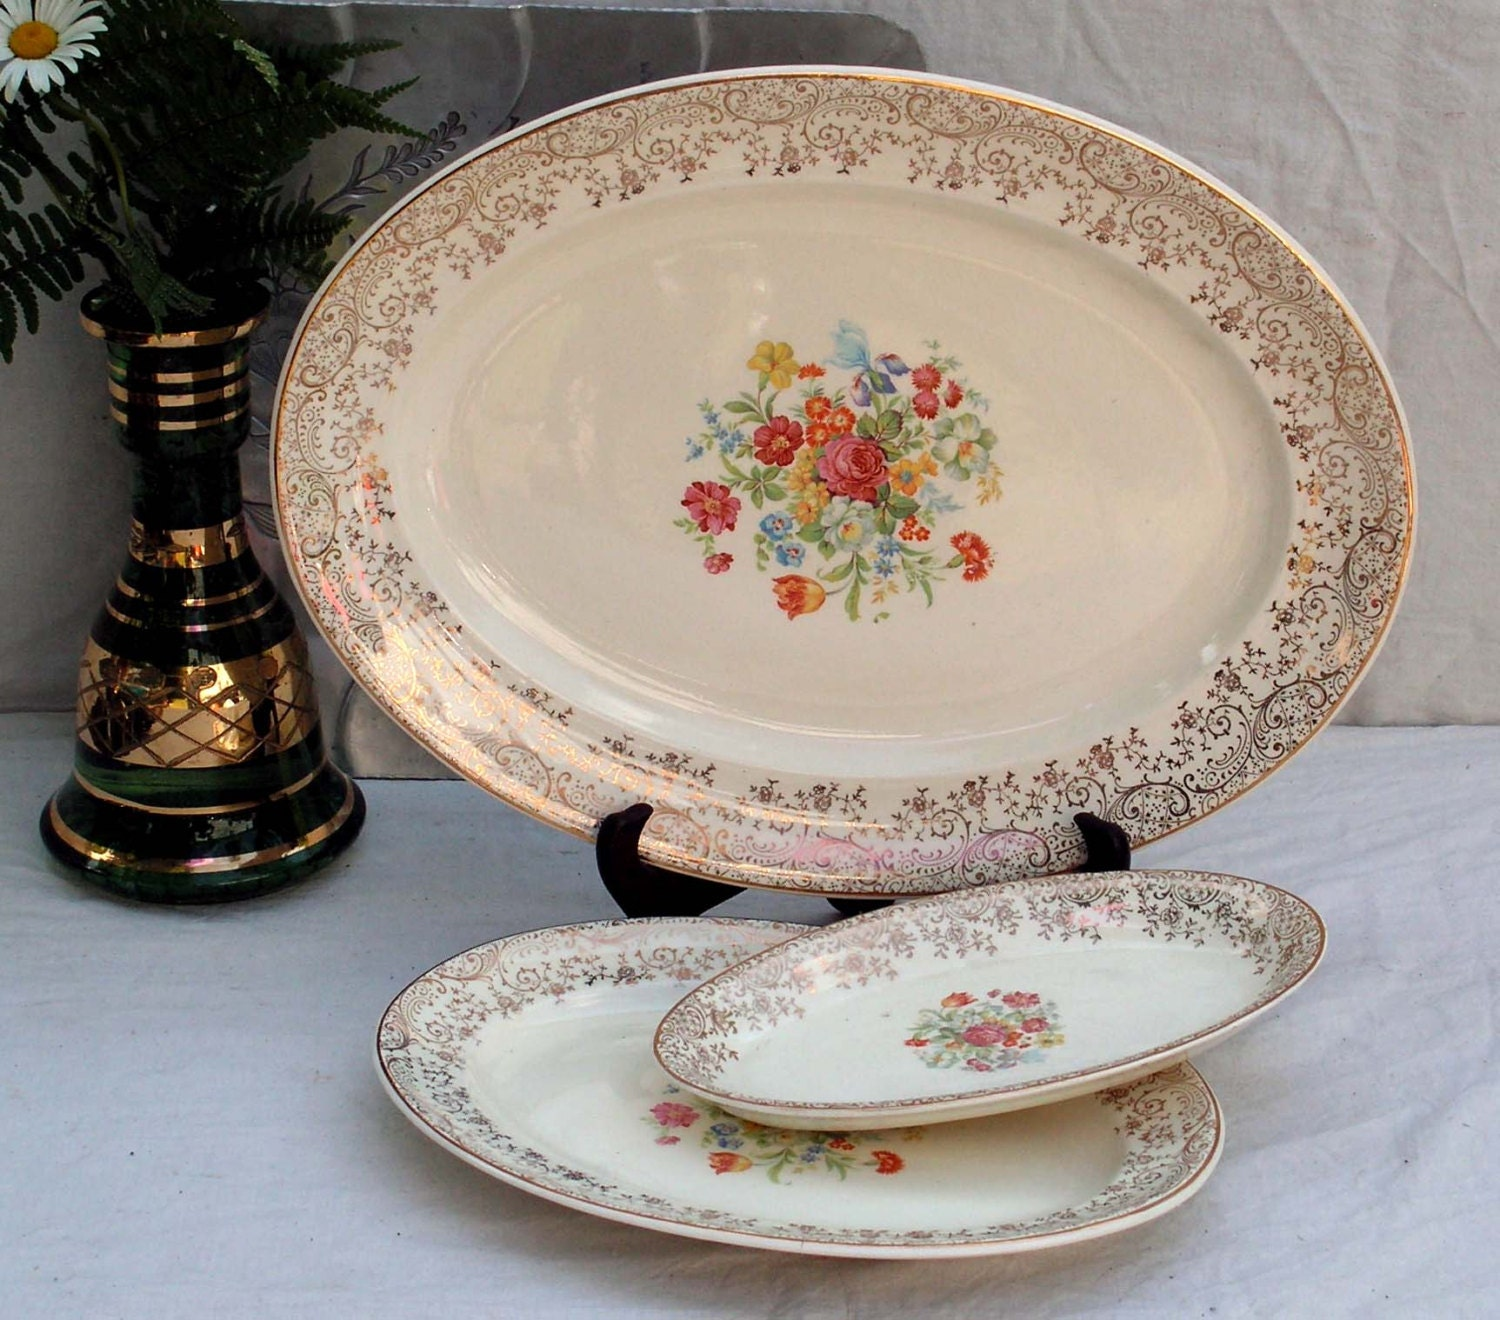 Steubenville China Serving Platter Set Floral Gold Filigree